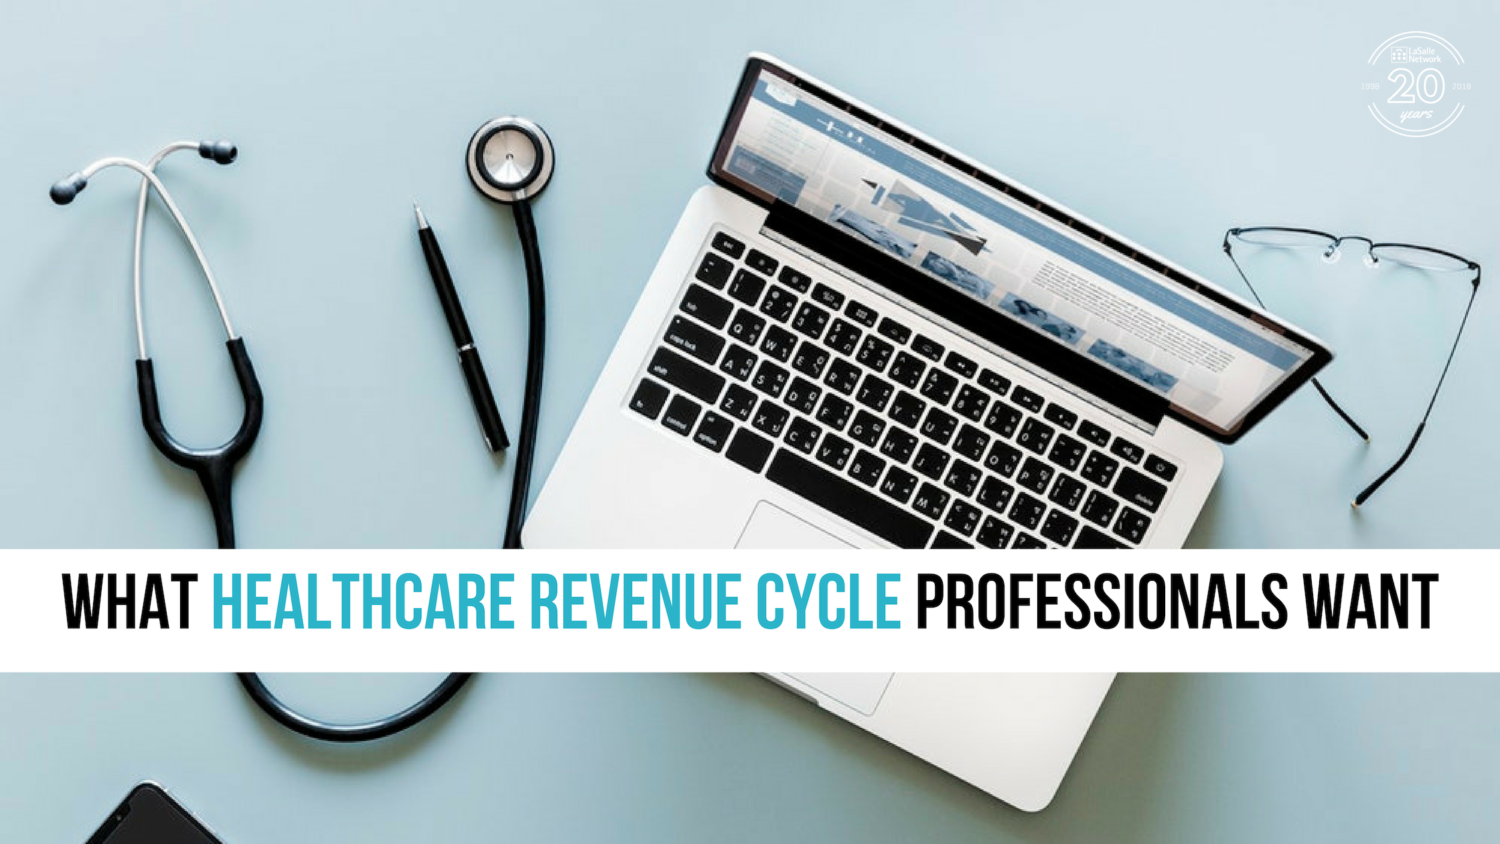 What Healthcare Revenue Cycle Professionals Want